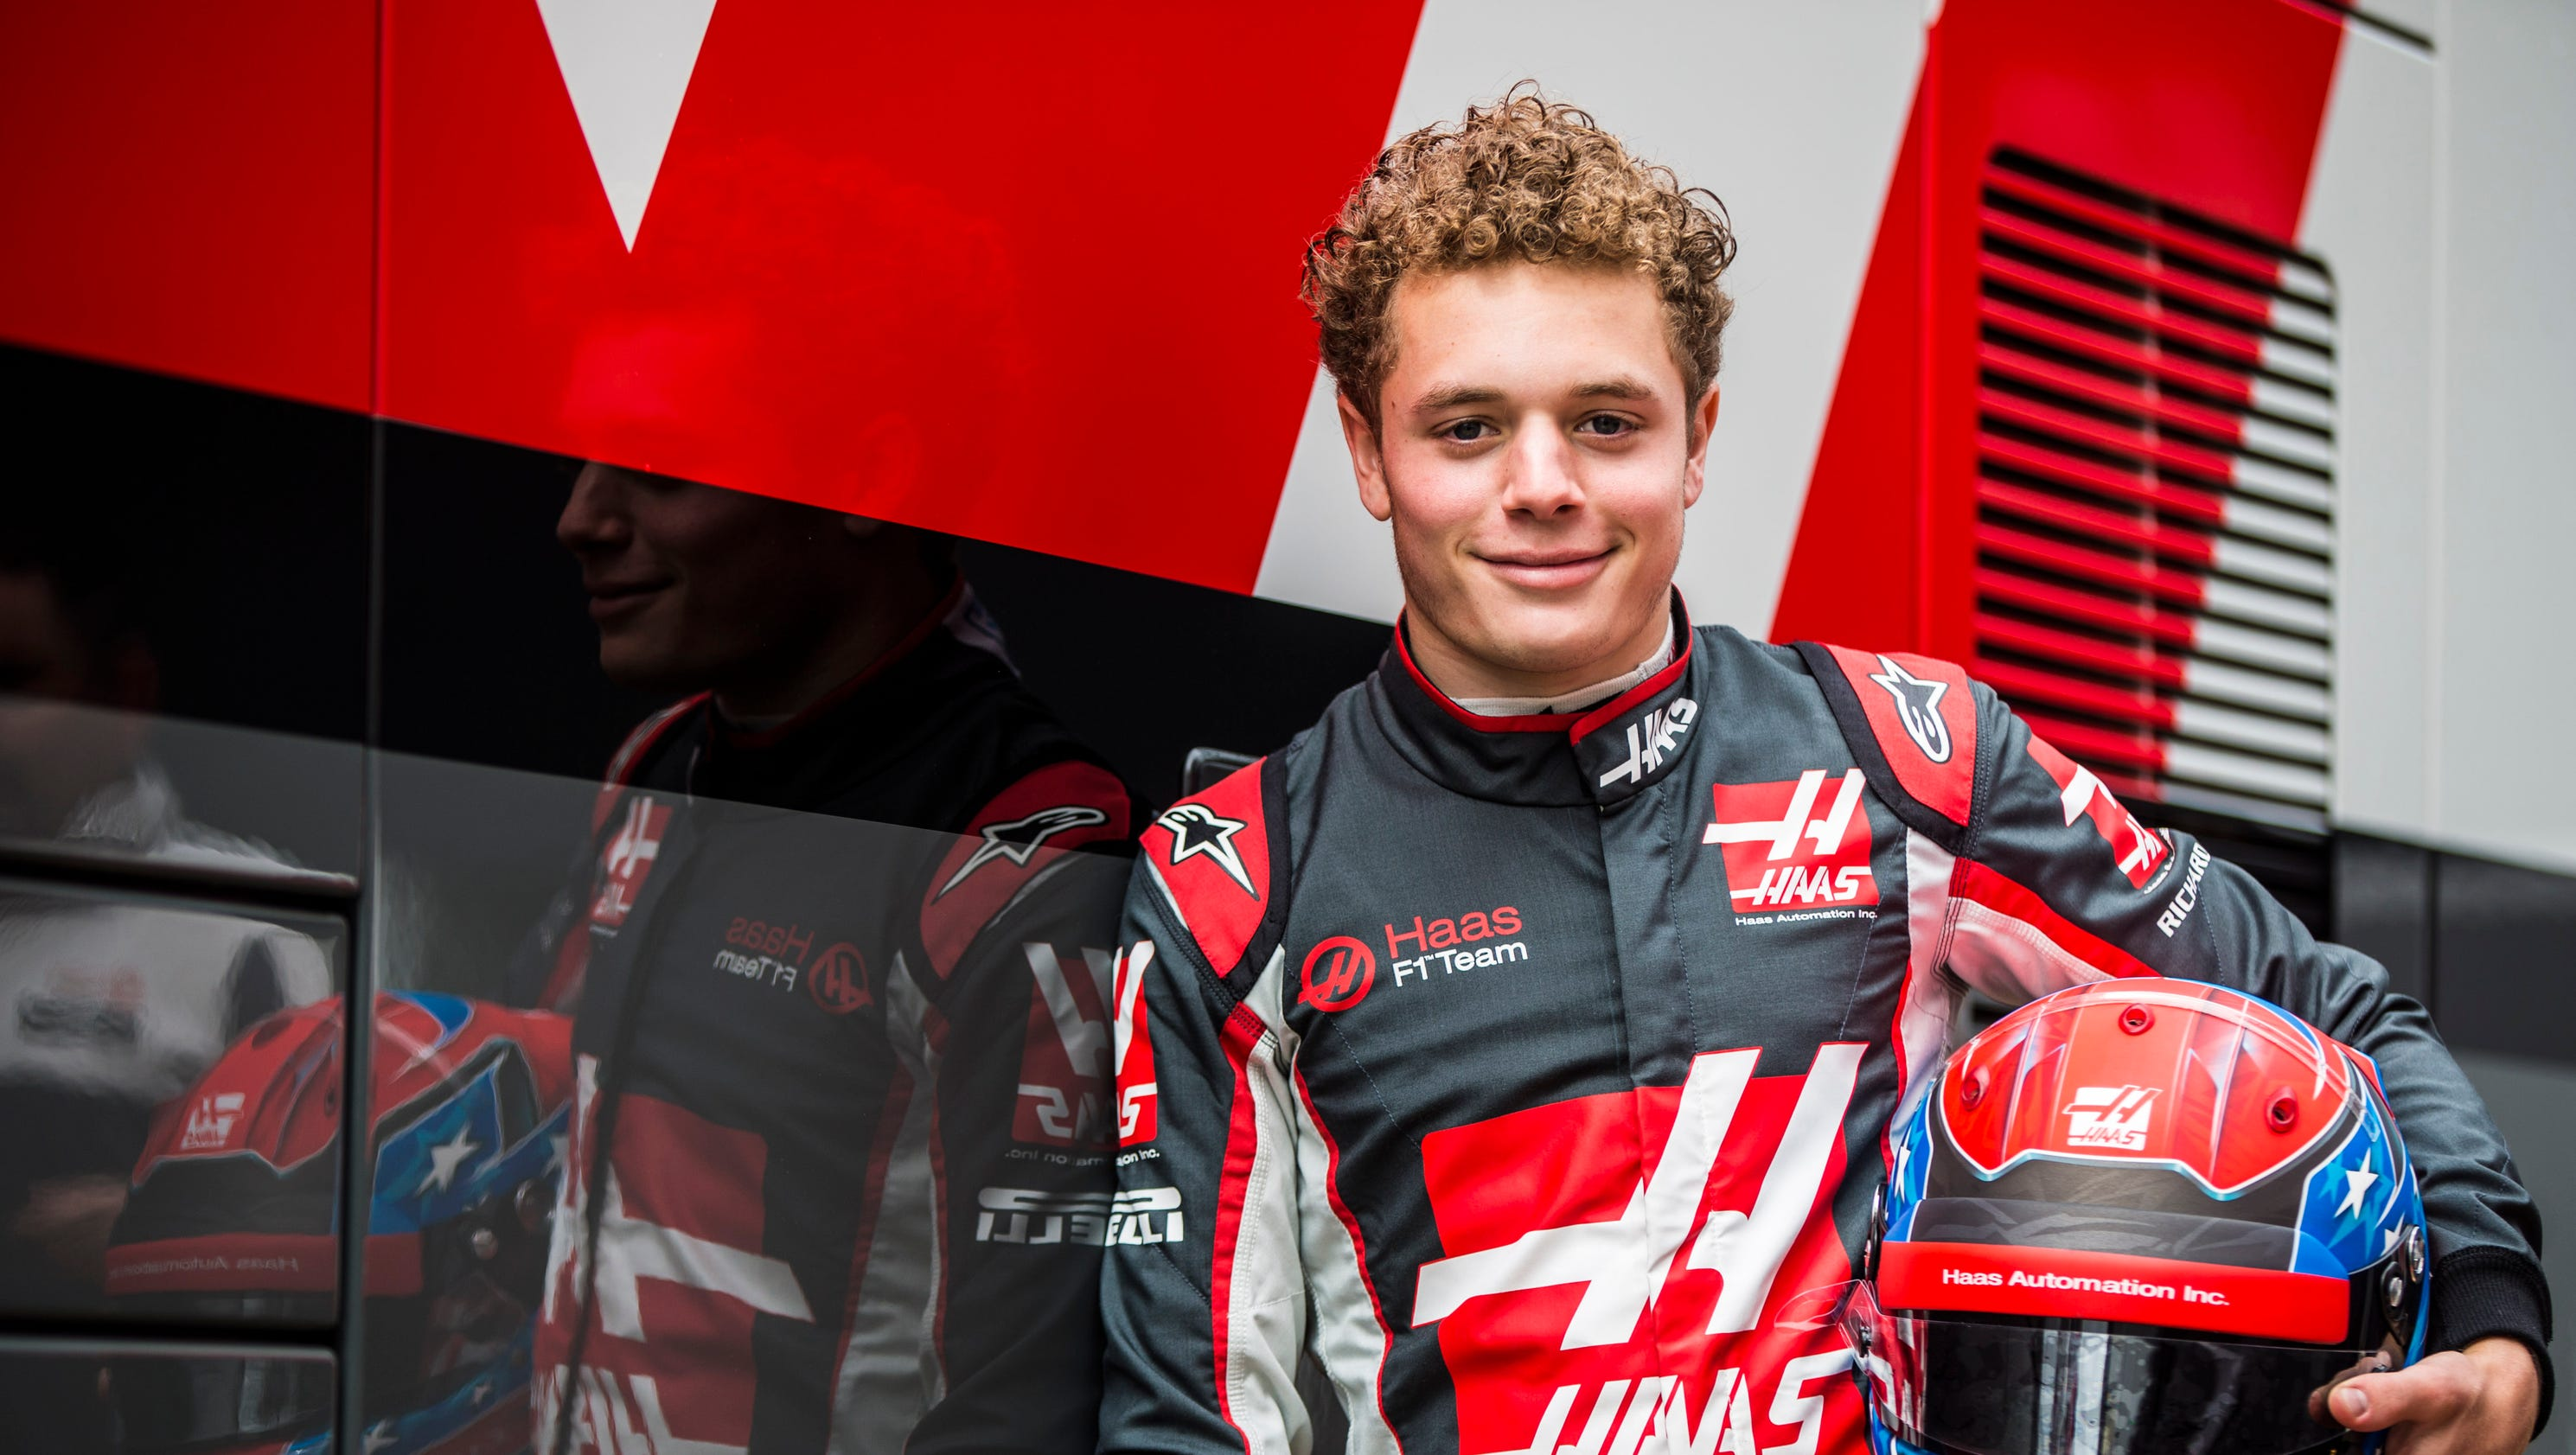 American teenager tests Formula One car for Haas F1 Team